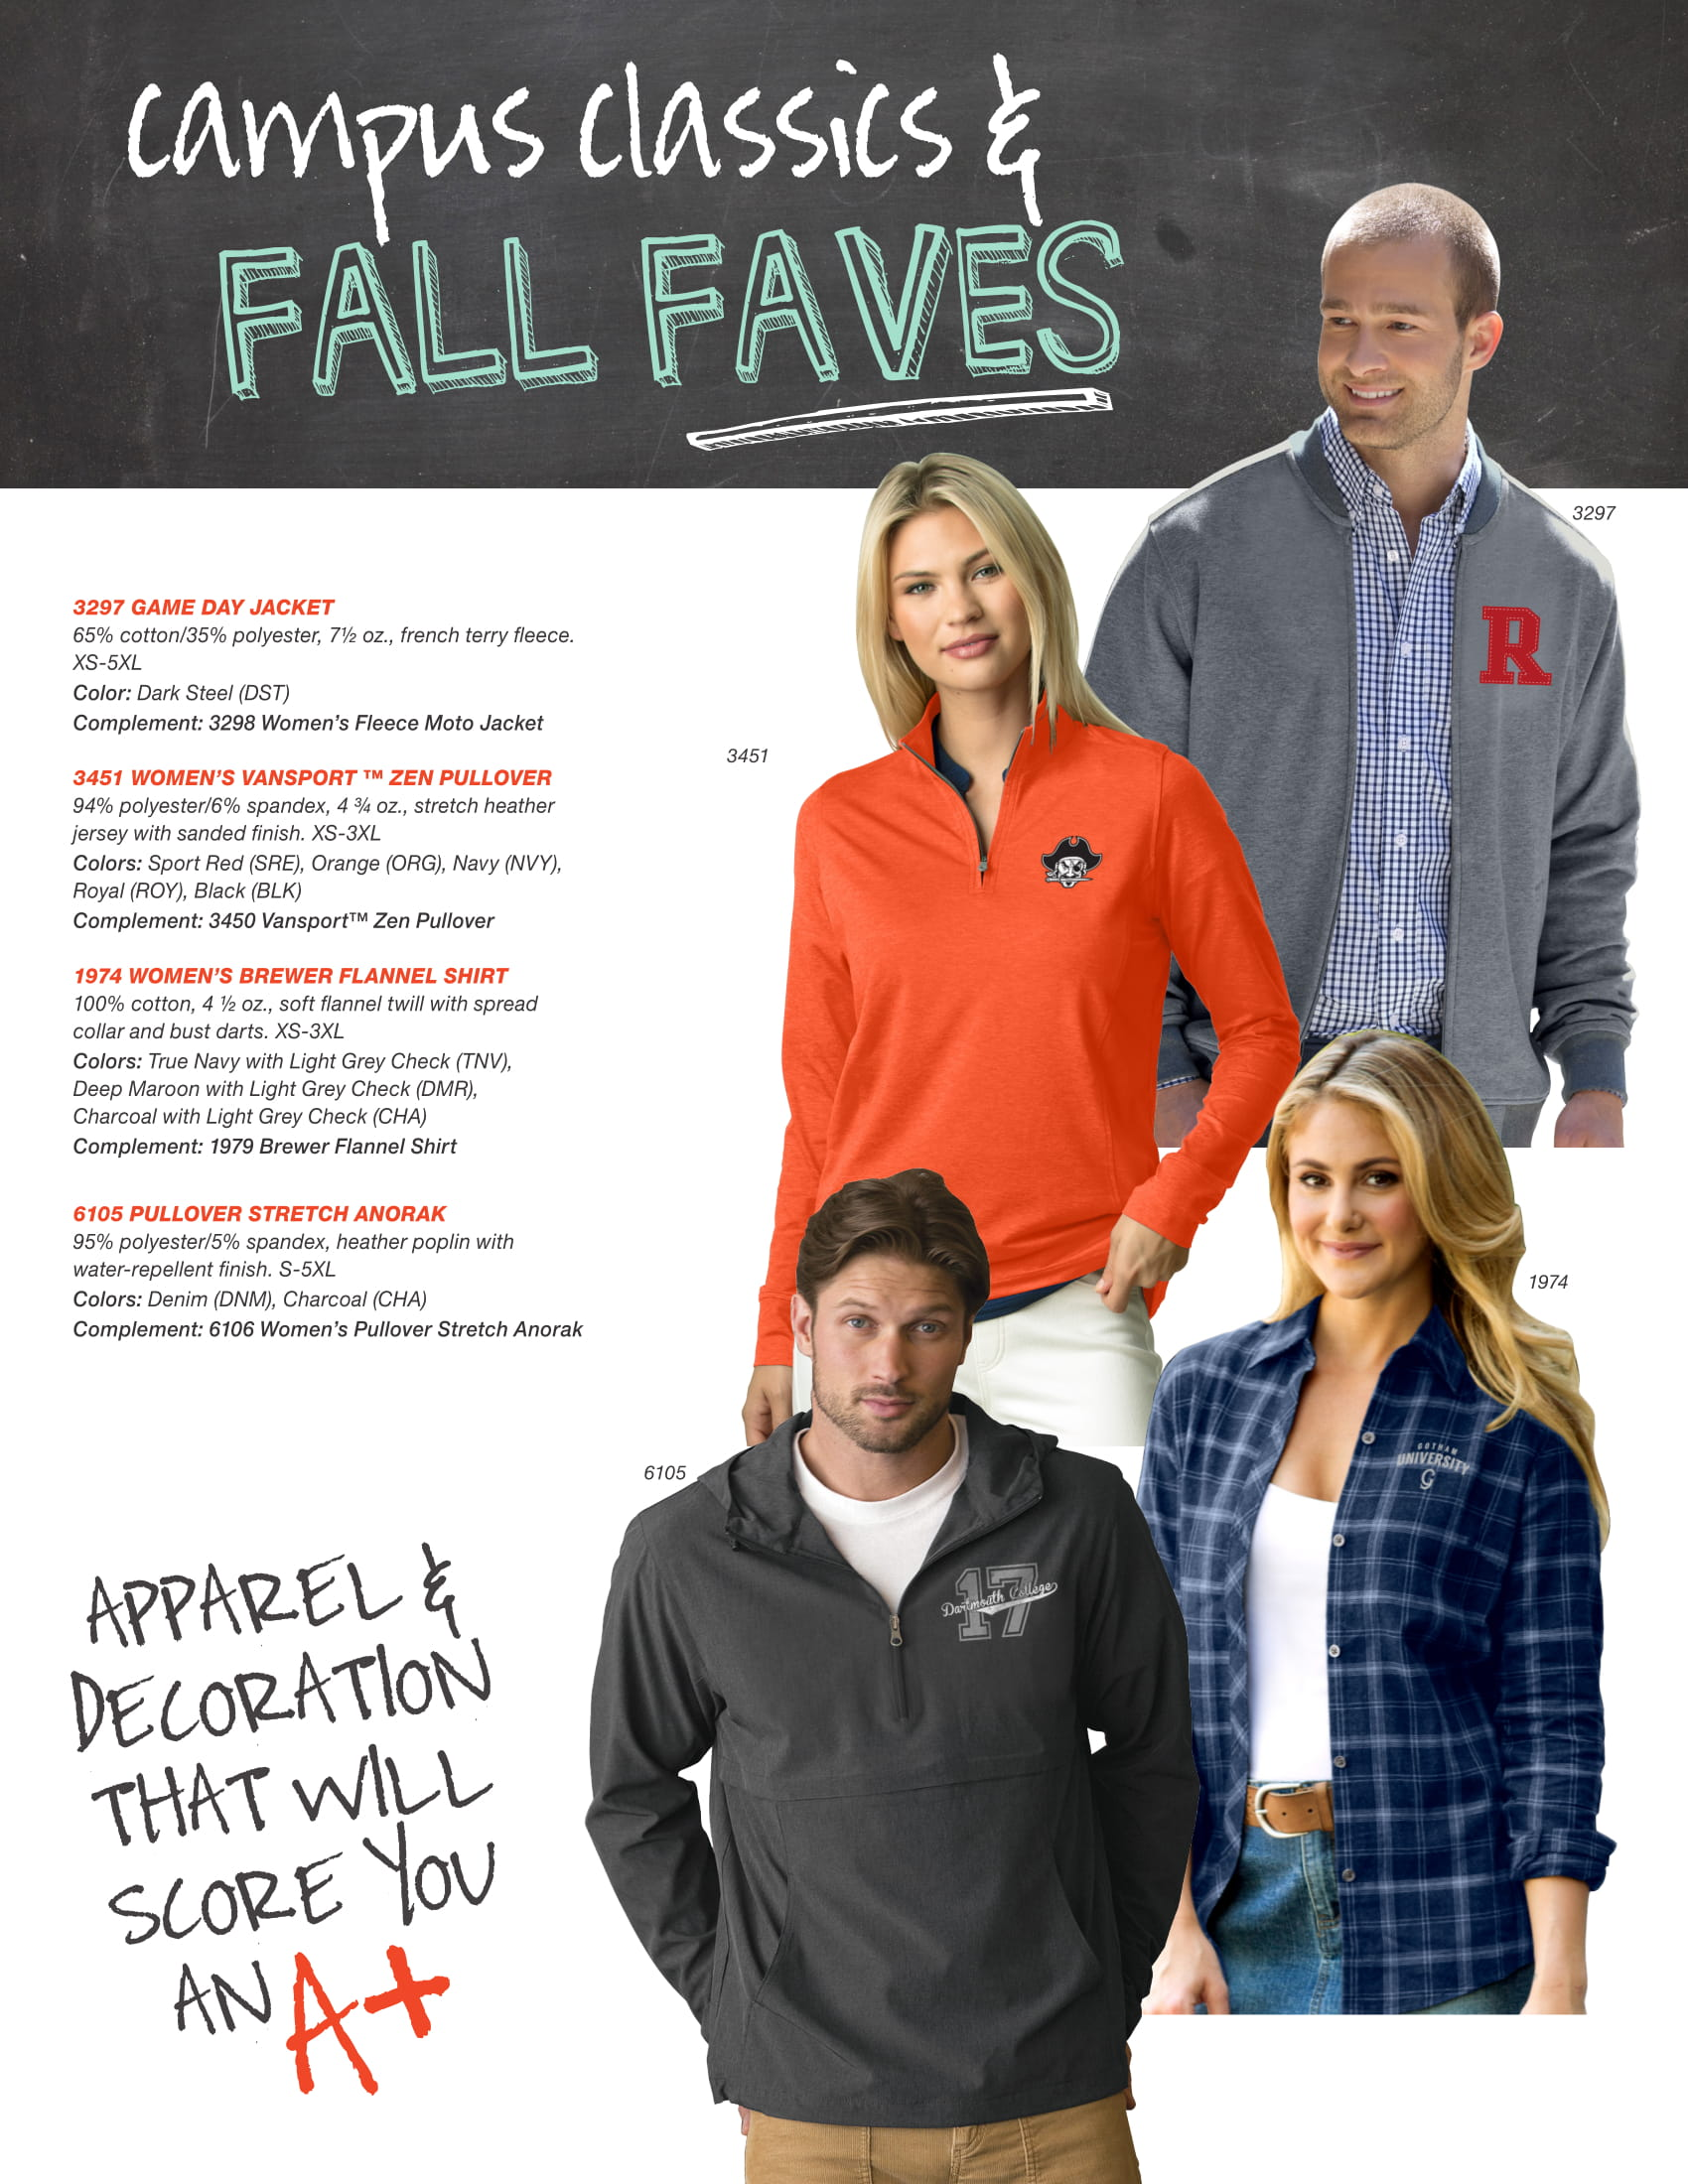 Campus Classic & Fall Faves